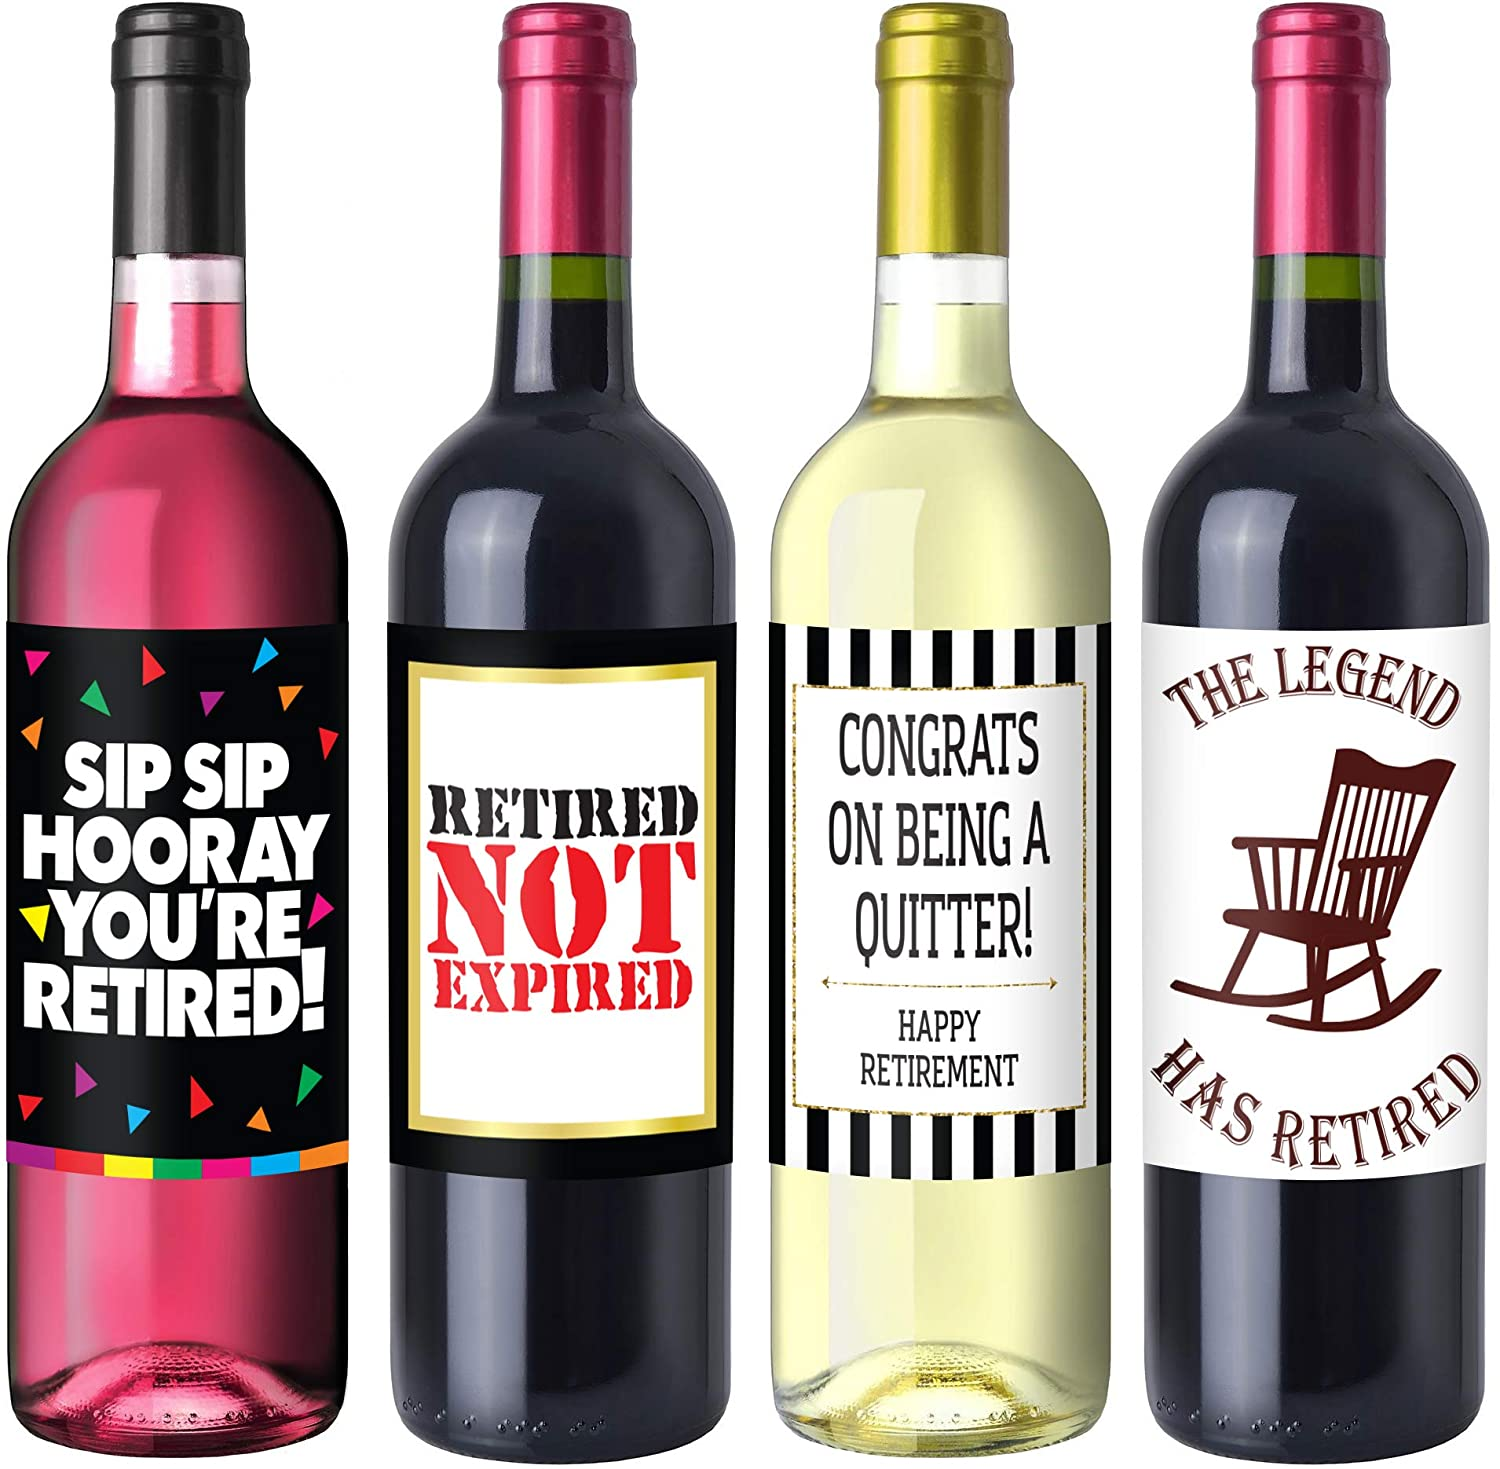 Retirement Party Wine Label Pack - Retirement Party Supplies, Gifts, and Decorations Sterling James Co.